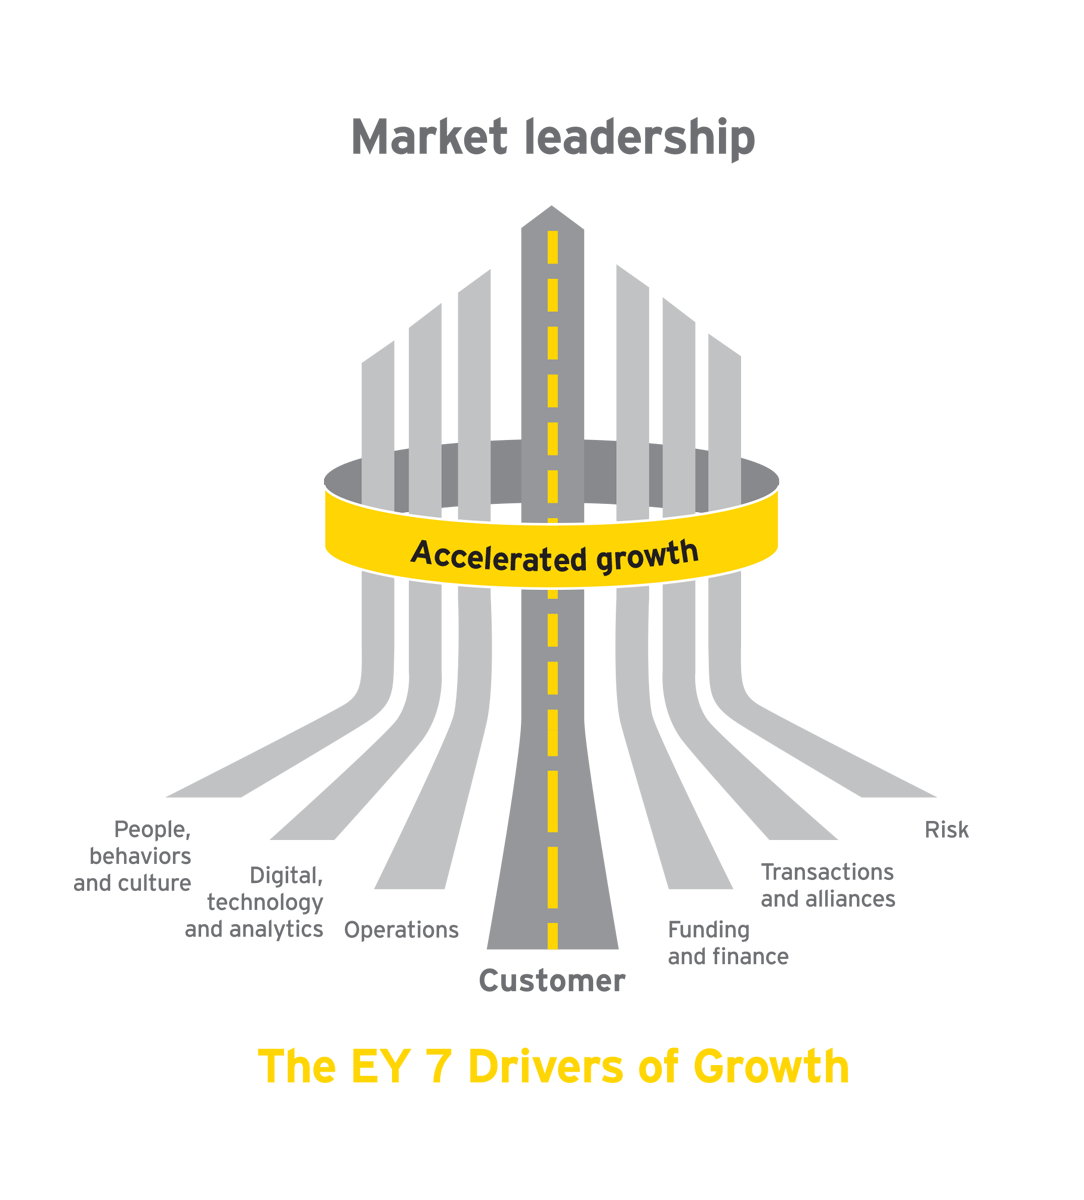 ey drivers of growth banner